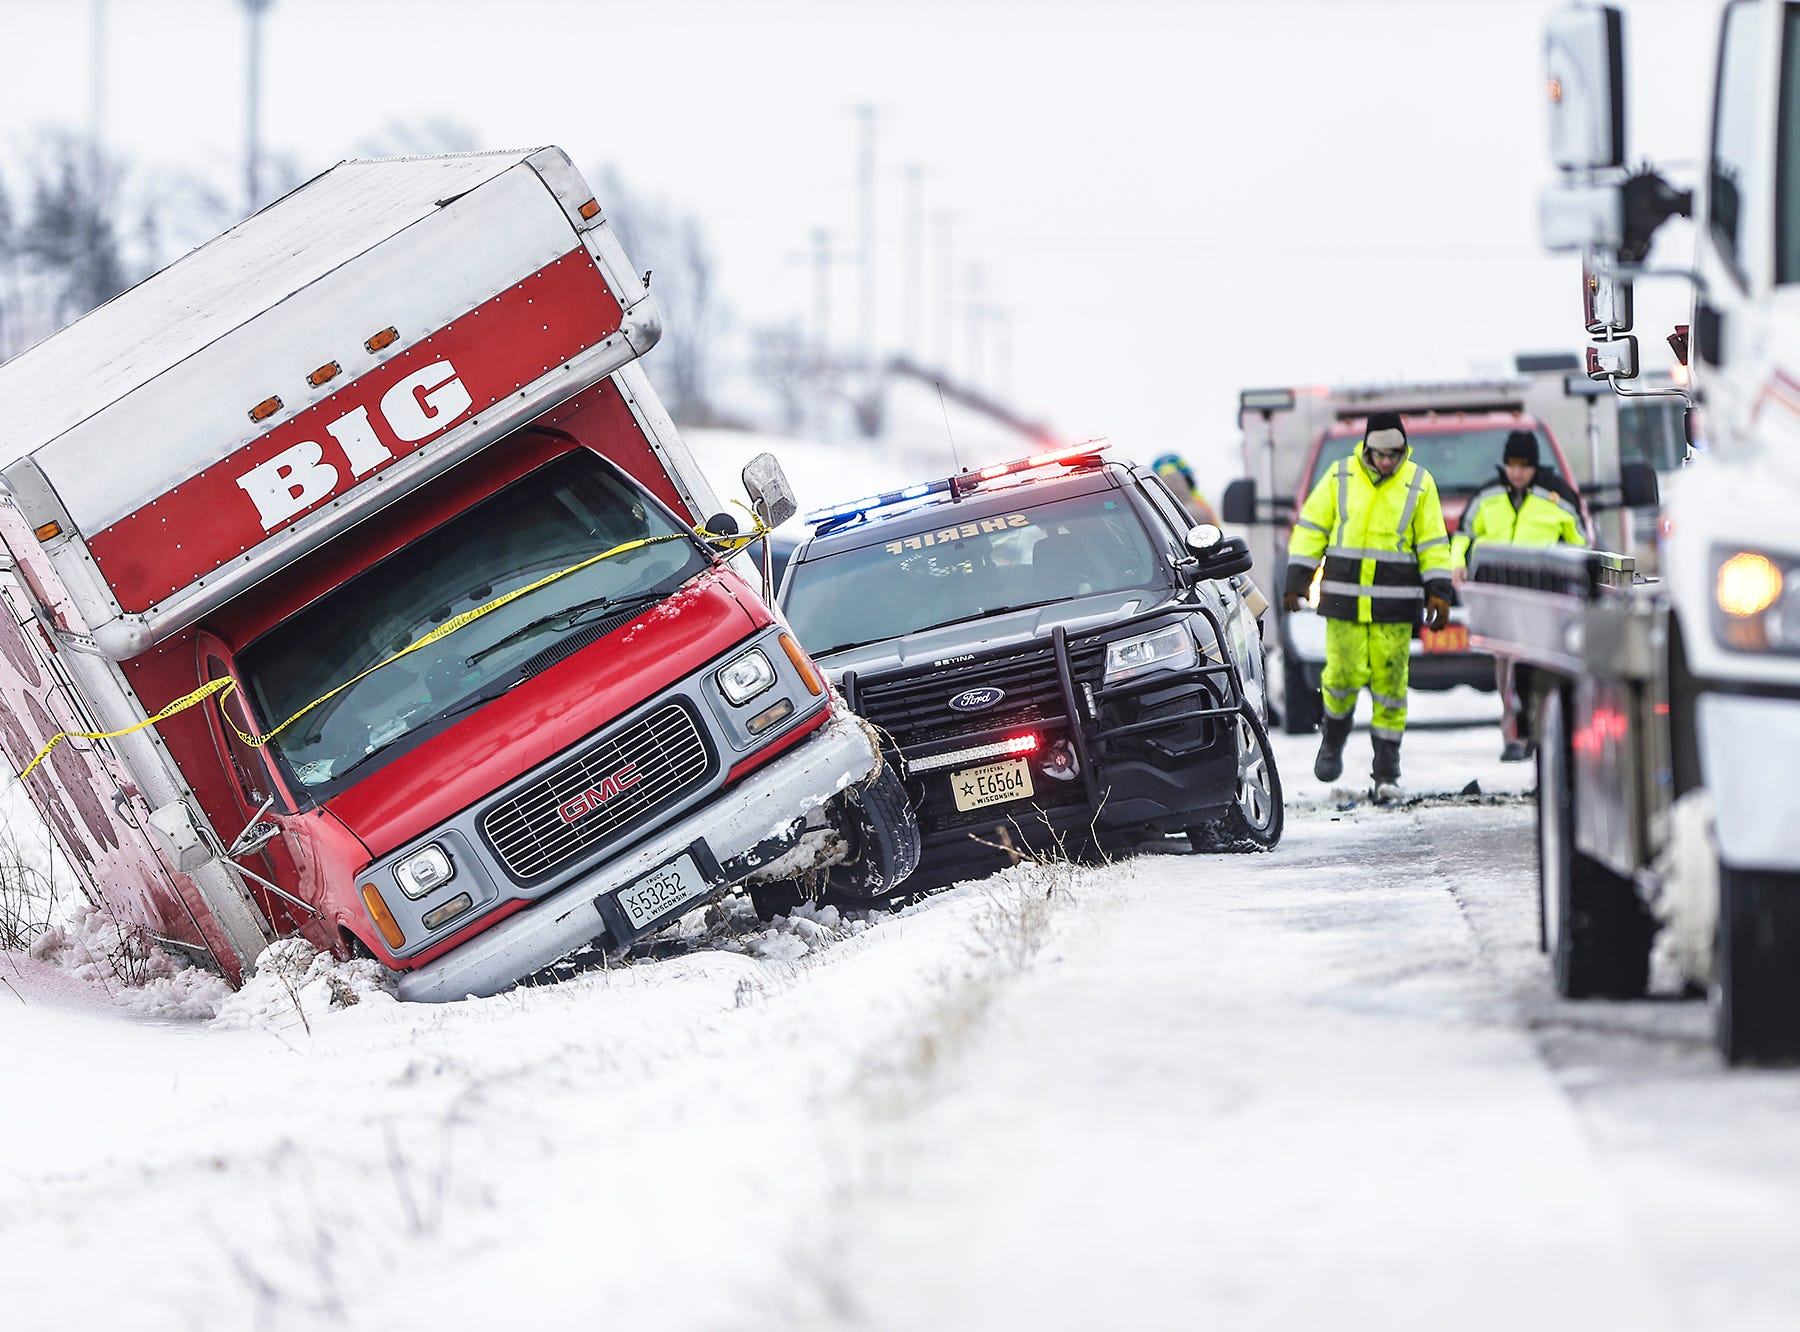 Emergency crews work the scene of a 3 vehicle crash, including a Fond du Lac County Sheriff's Office squad car, Sunday, February 24, 2019, on Interstate 41 near County Highway F south of Fond du Lac, Wisconsin. Doug Raflik/USA TODAY NETWORK-Wisconsin